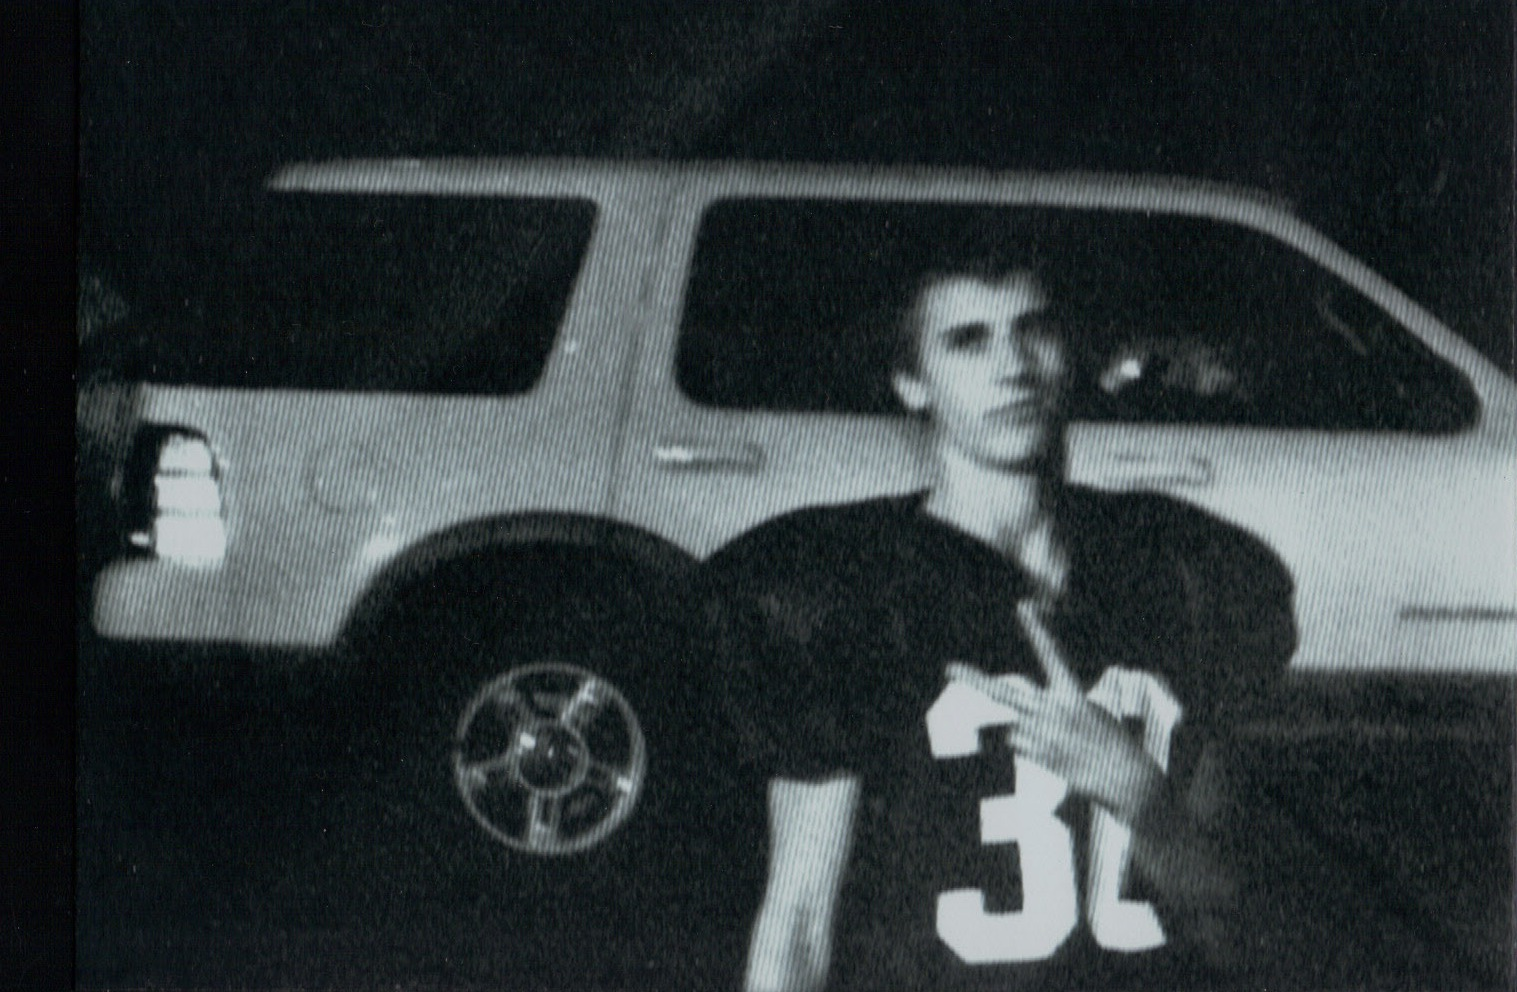 connor football uniform with car.jpg